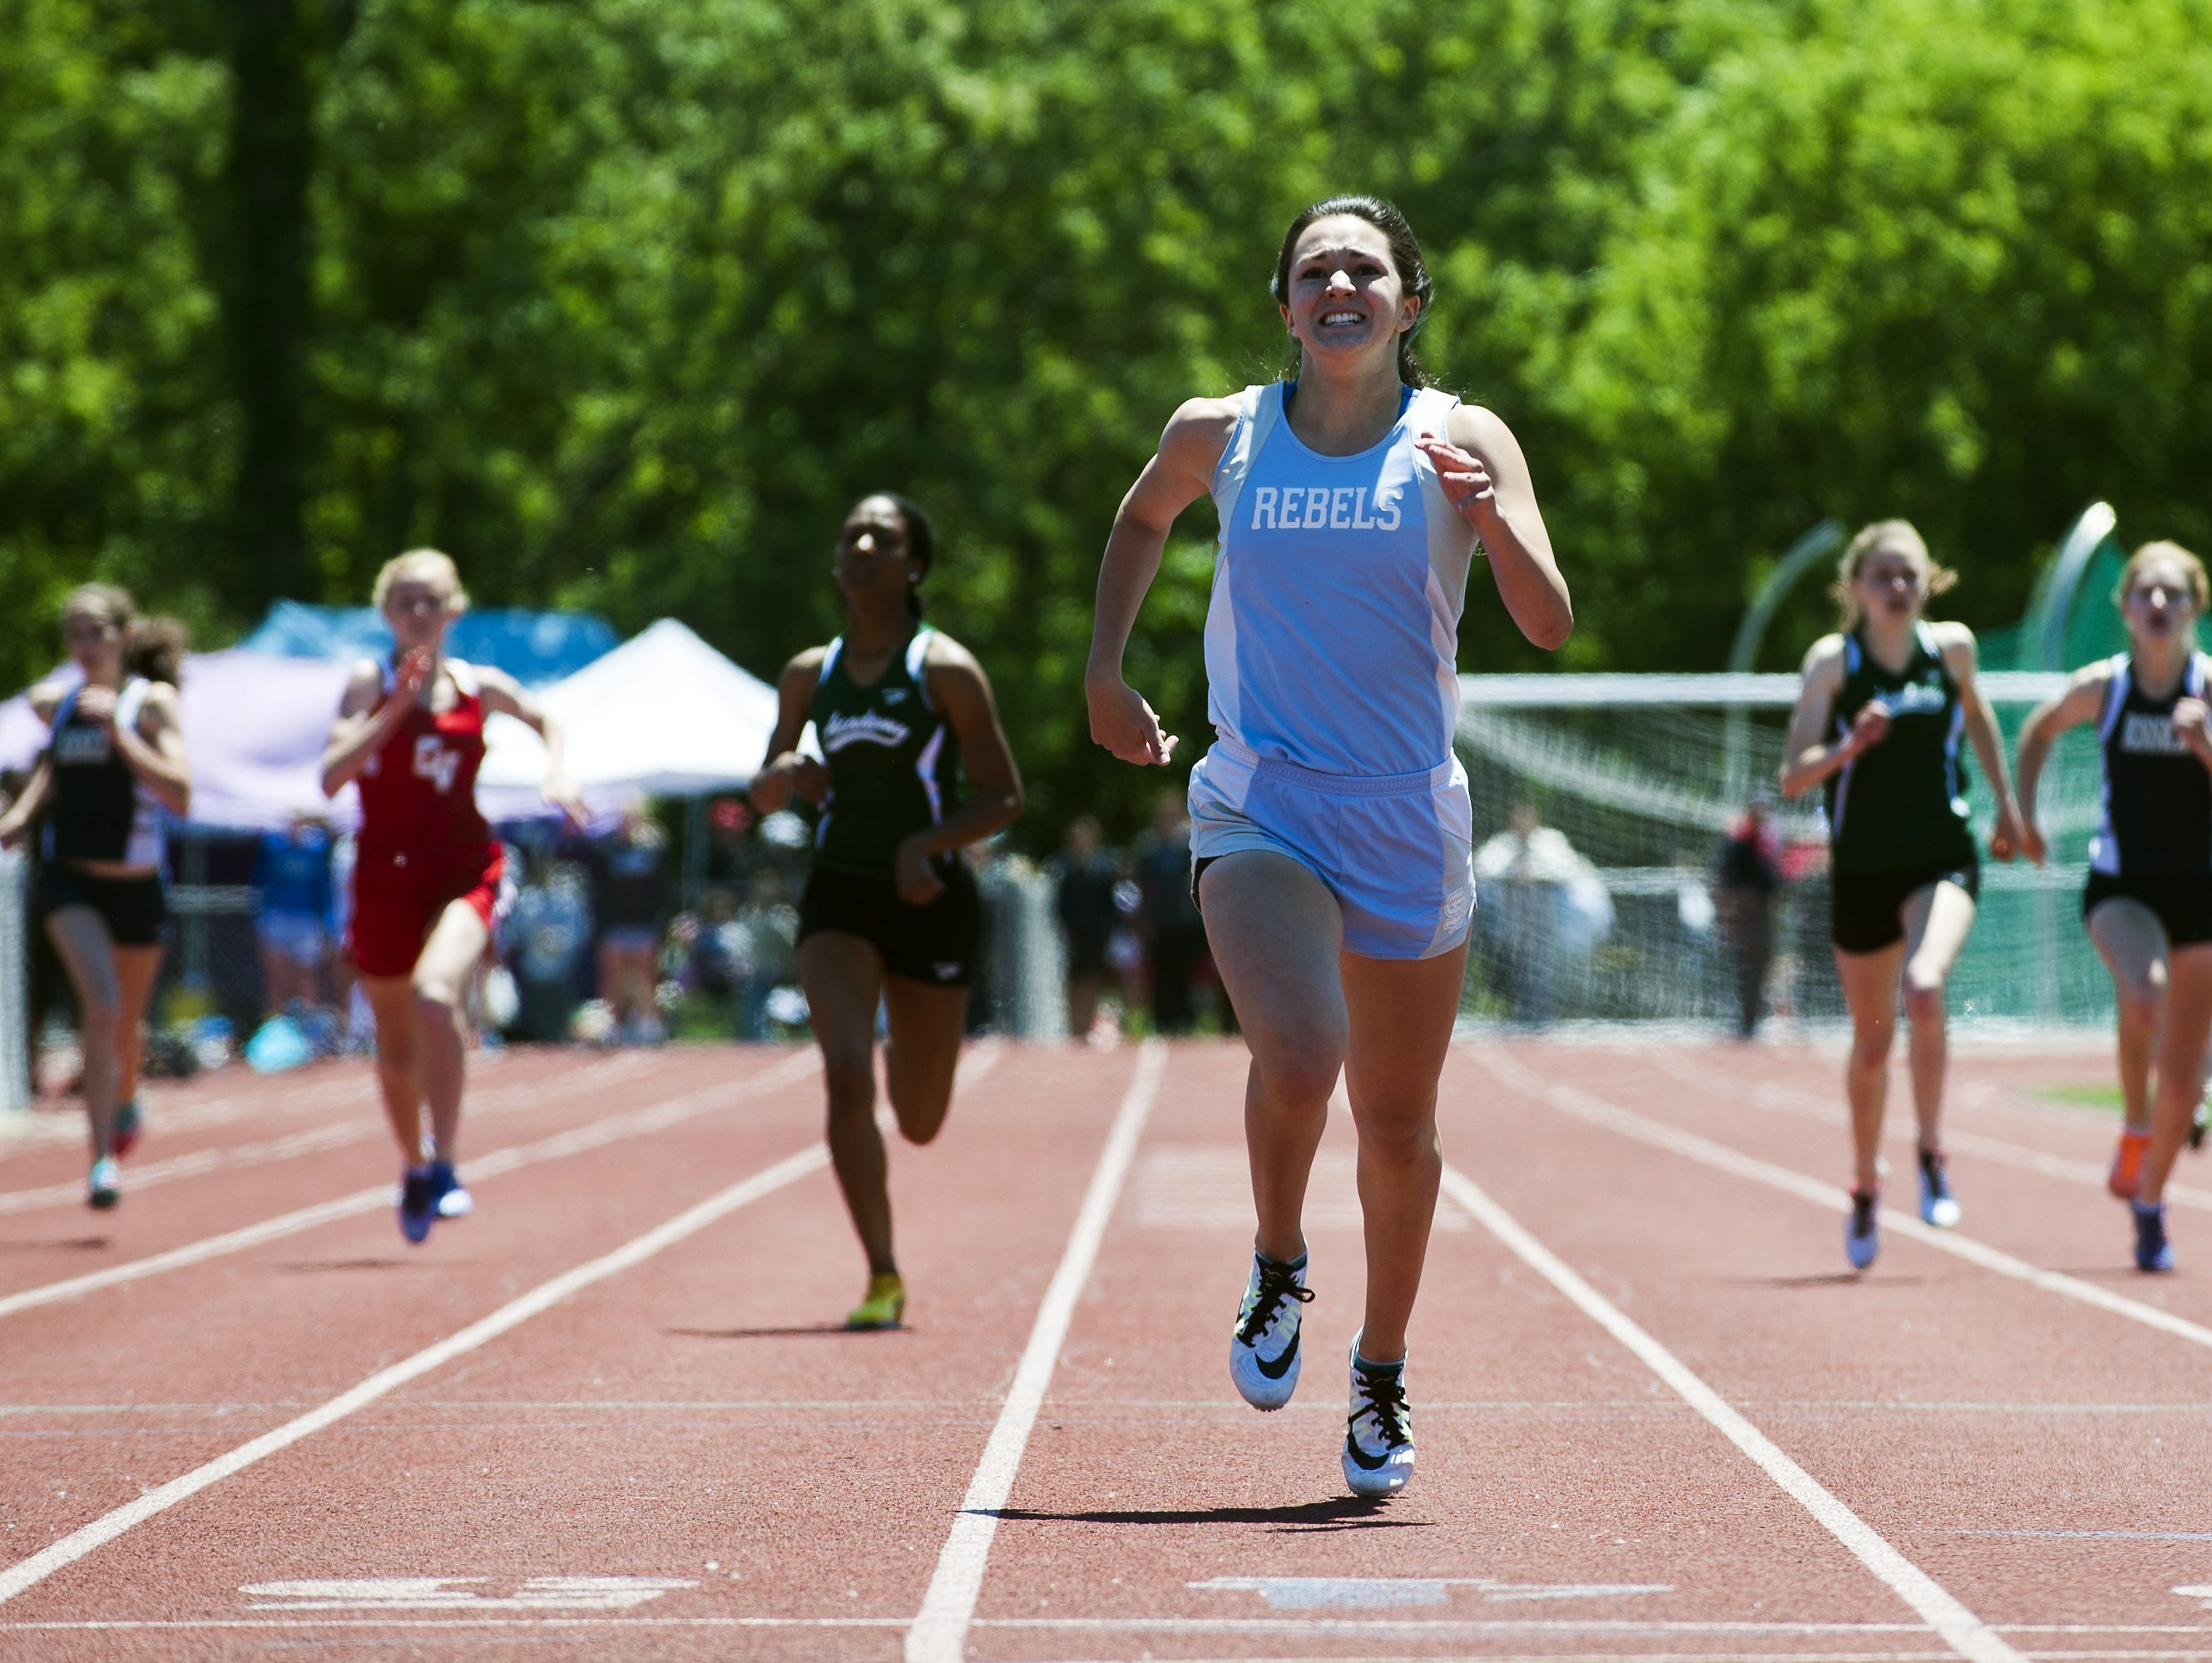 South Burlington's Kayla Gilding competes in the 100m dash during the high school track and field state championship meet at Burlington High School on Saturday June 6, 2015 in Burlington, Vermont.